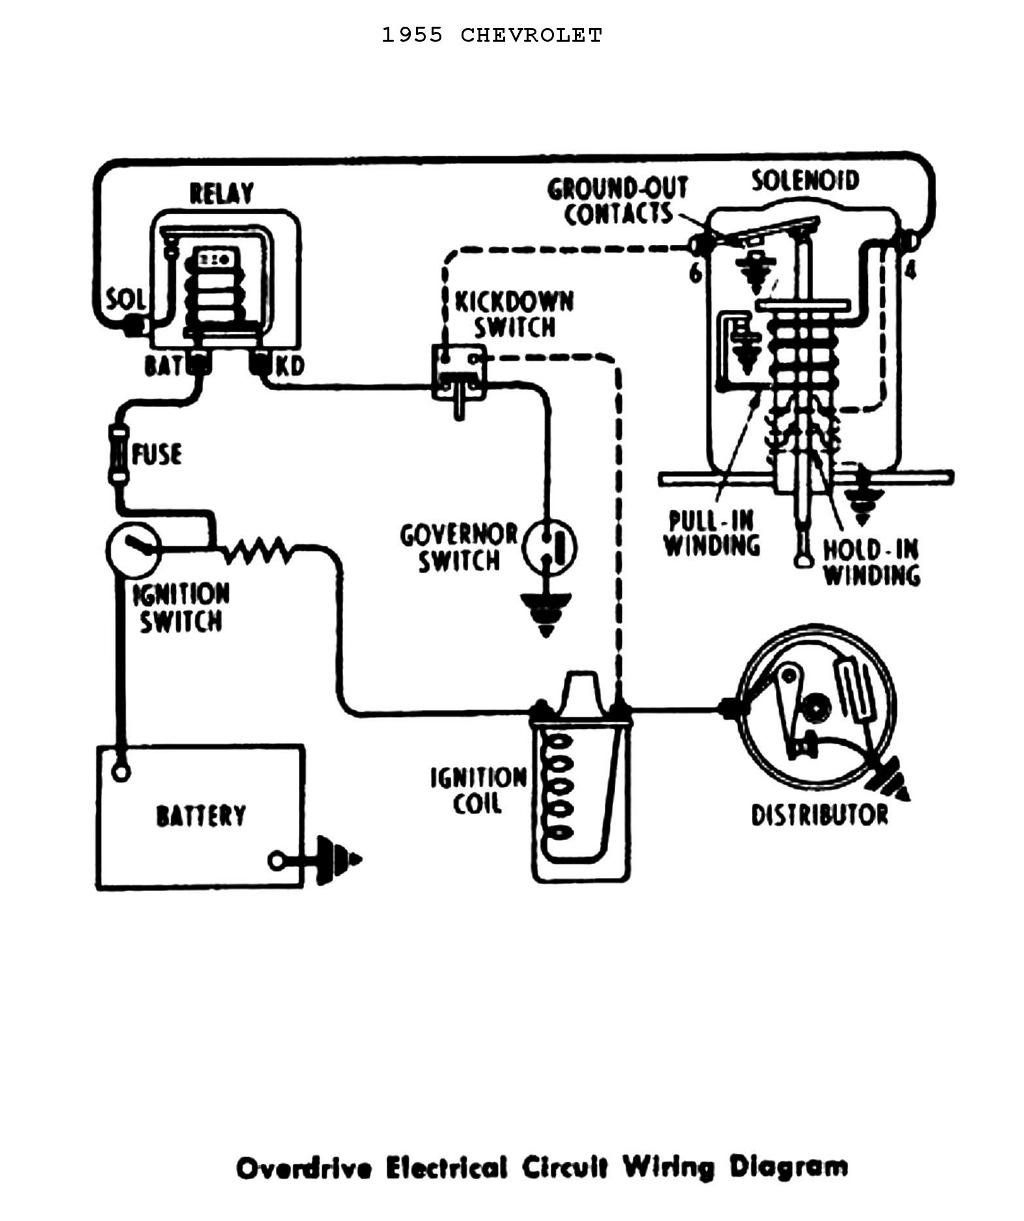 Ignition Circuit Wiring - Wiring Diagram Blog - Ford Ignition Coil Wiring Diagram